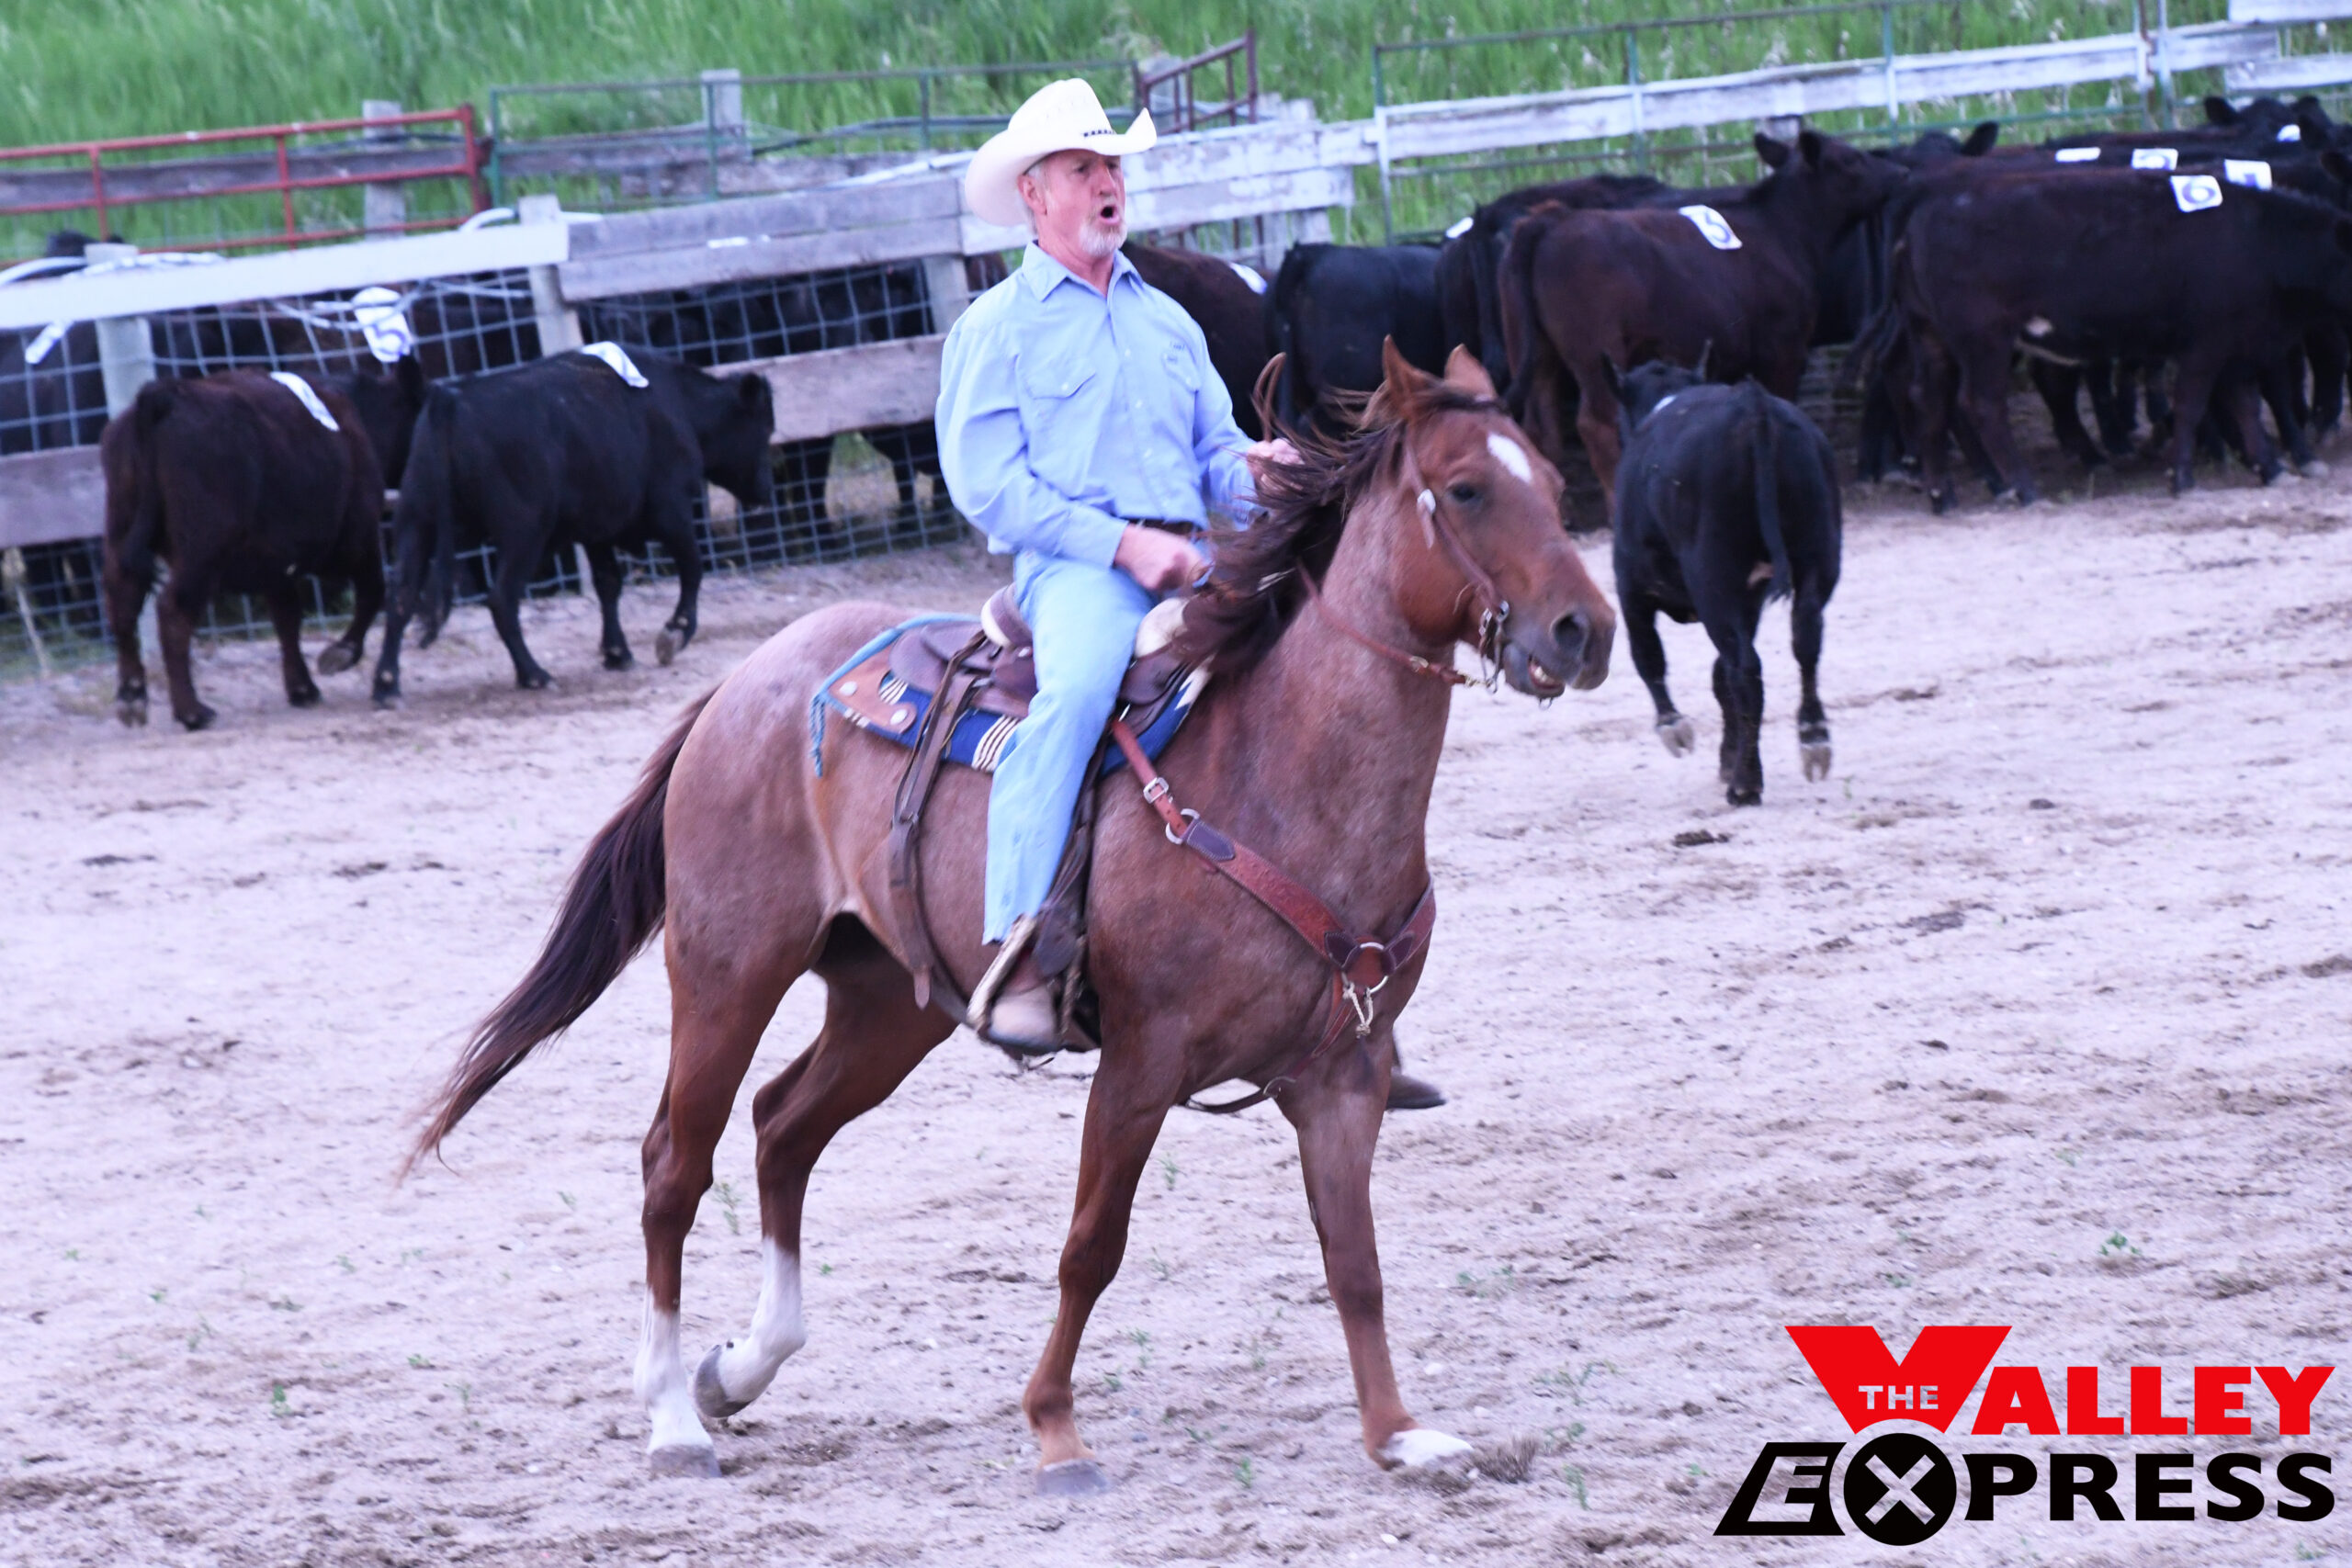 Mead, Graham, and Schuchard Win Team Penning Event